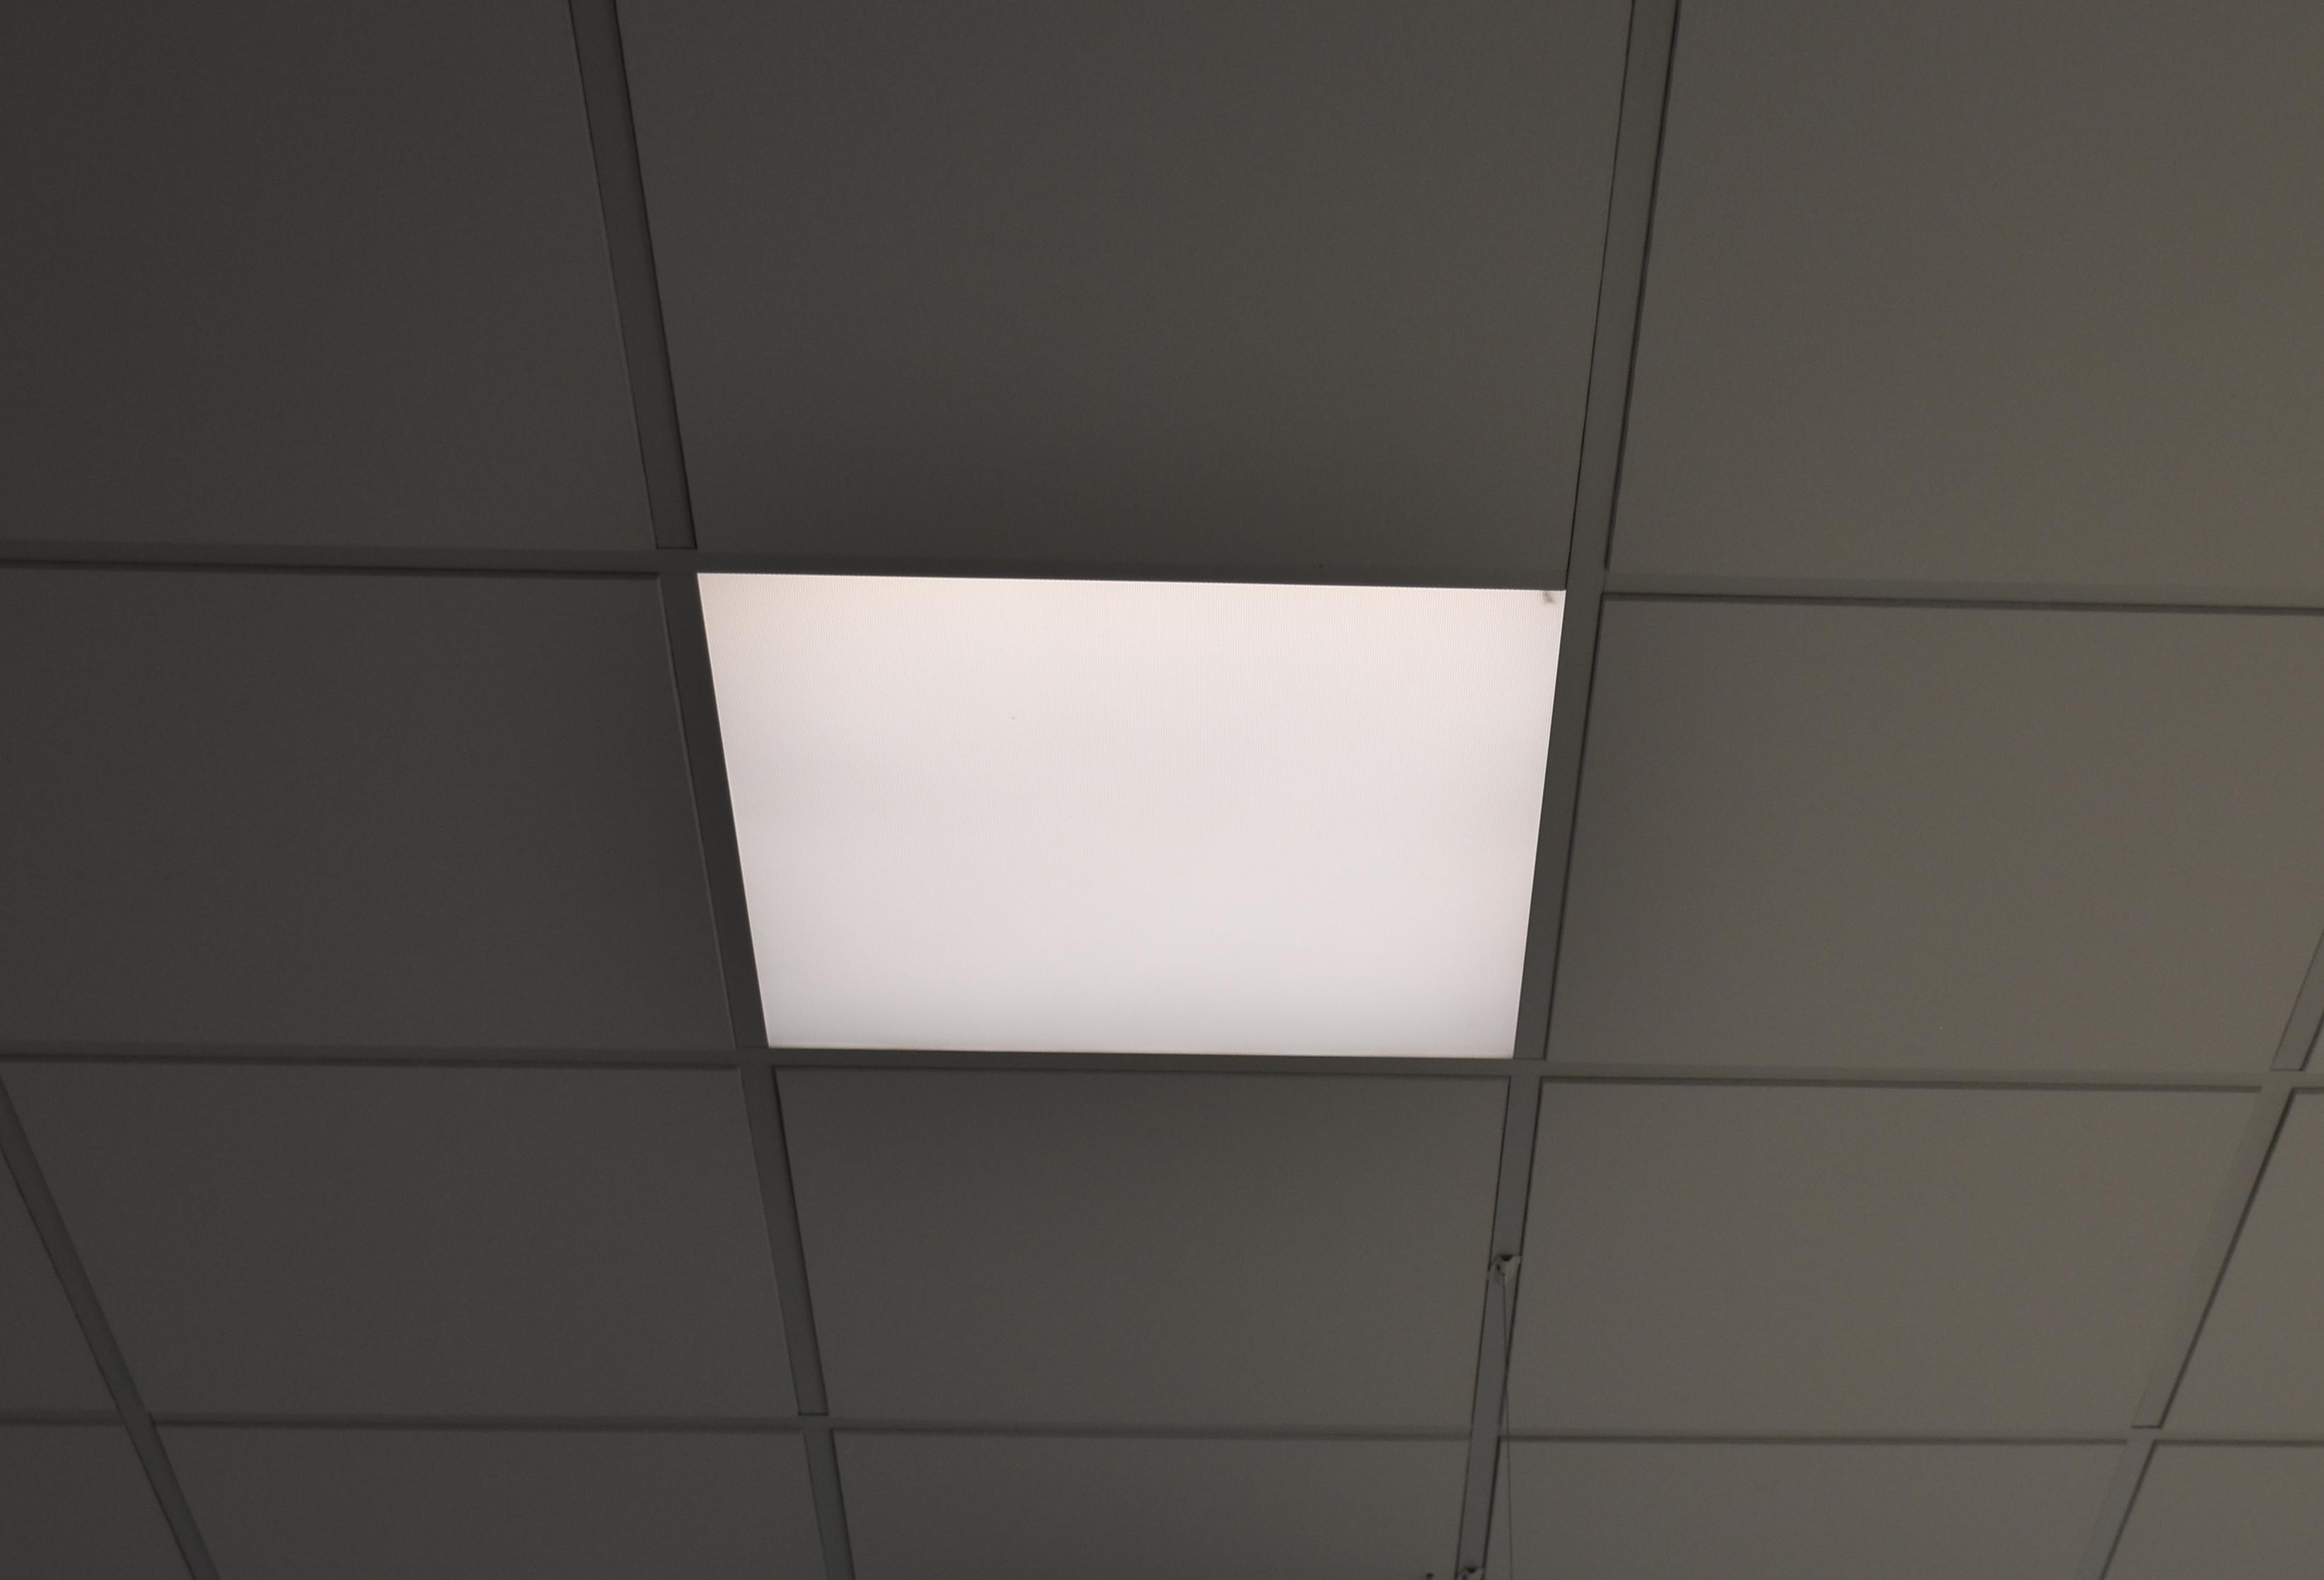 Arun led led luks arun matches the most common sizes of ceiling tiles dailygadgetfo Image collections